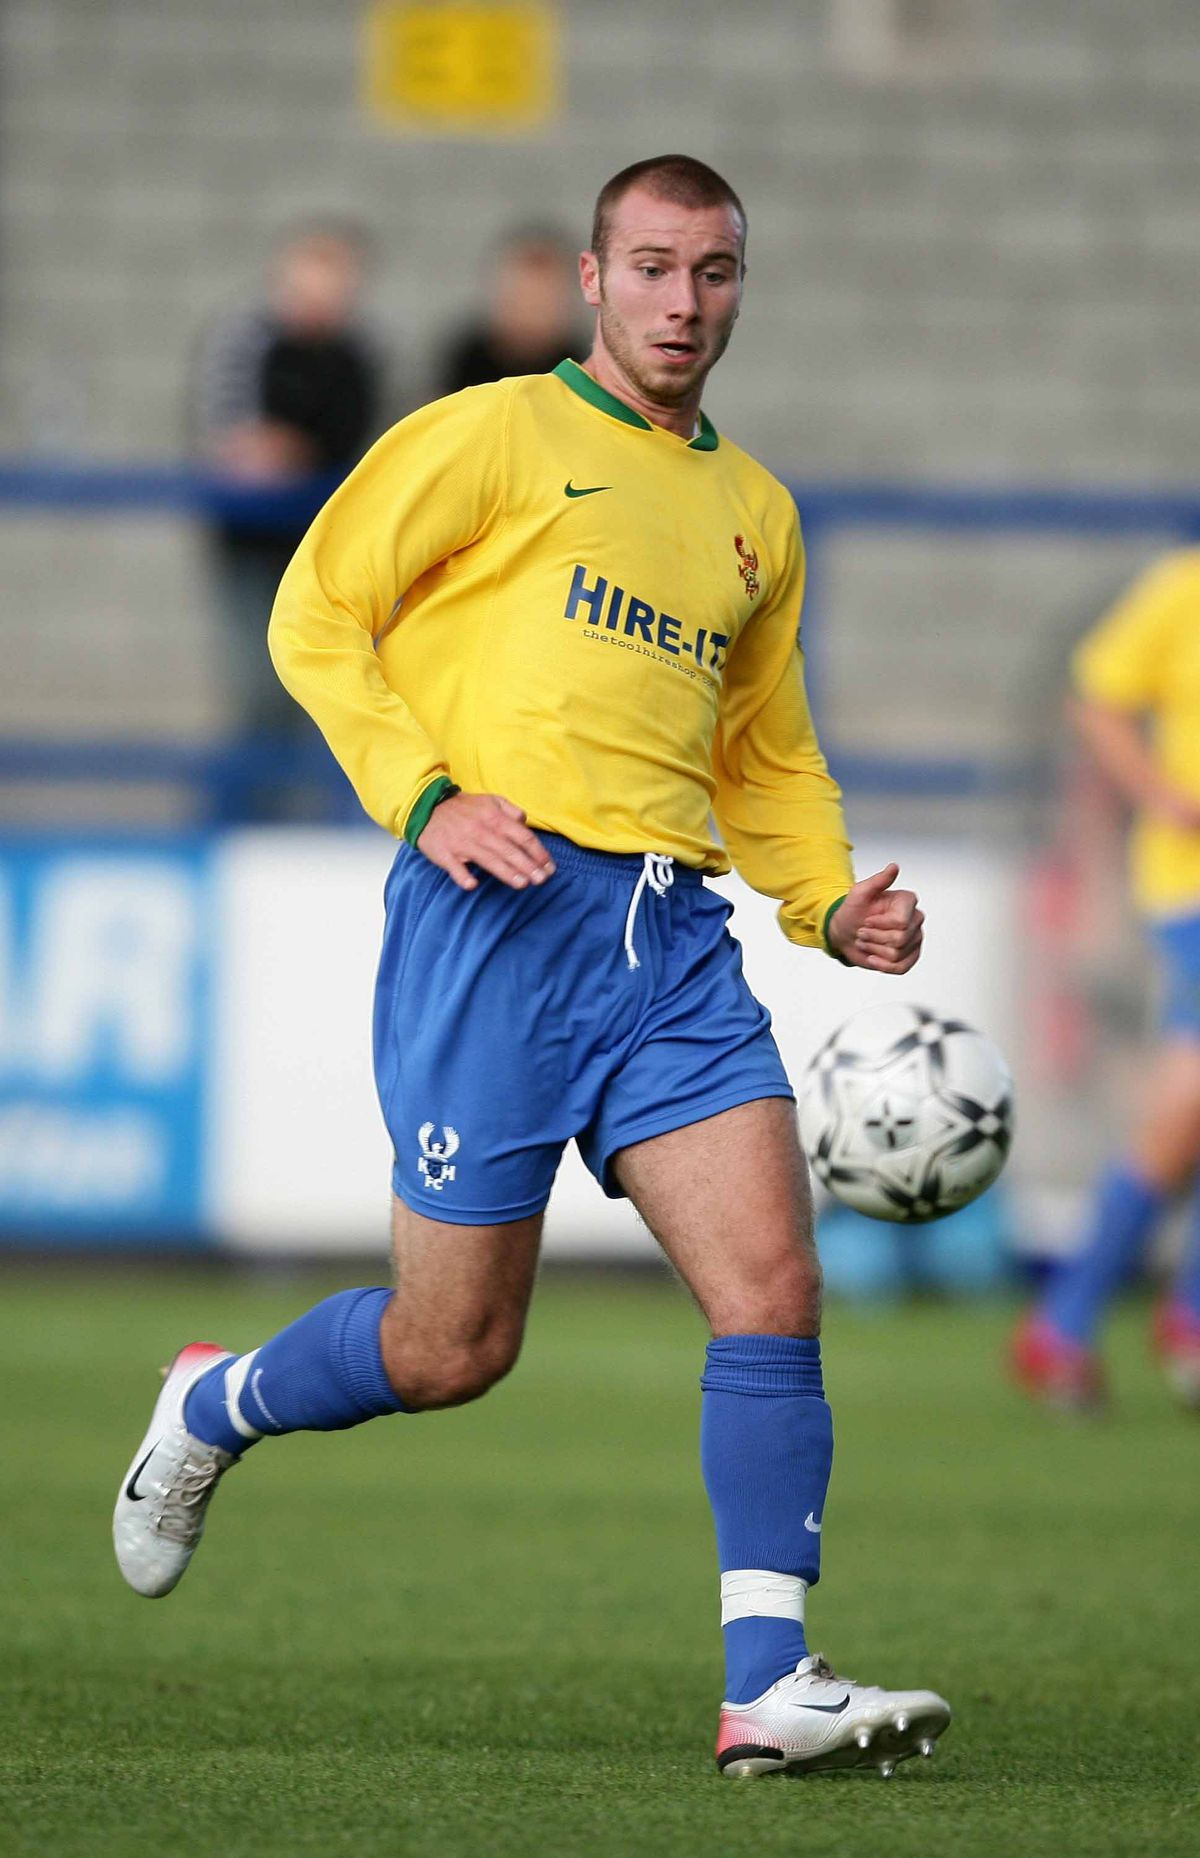 Russ Penn during his playing days for Harriers.